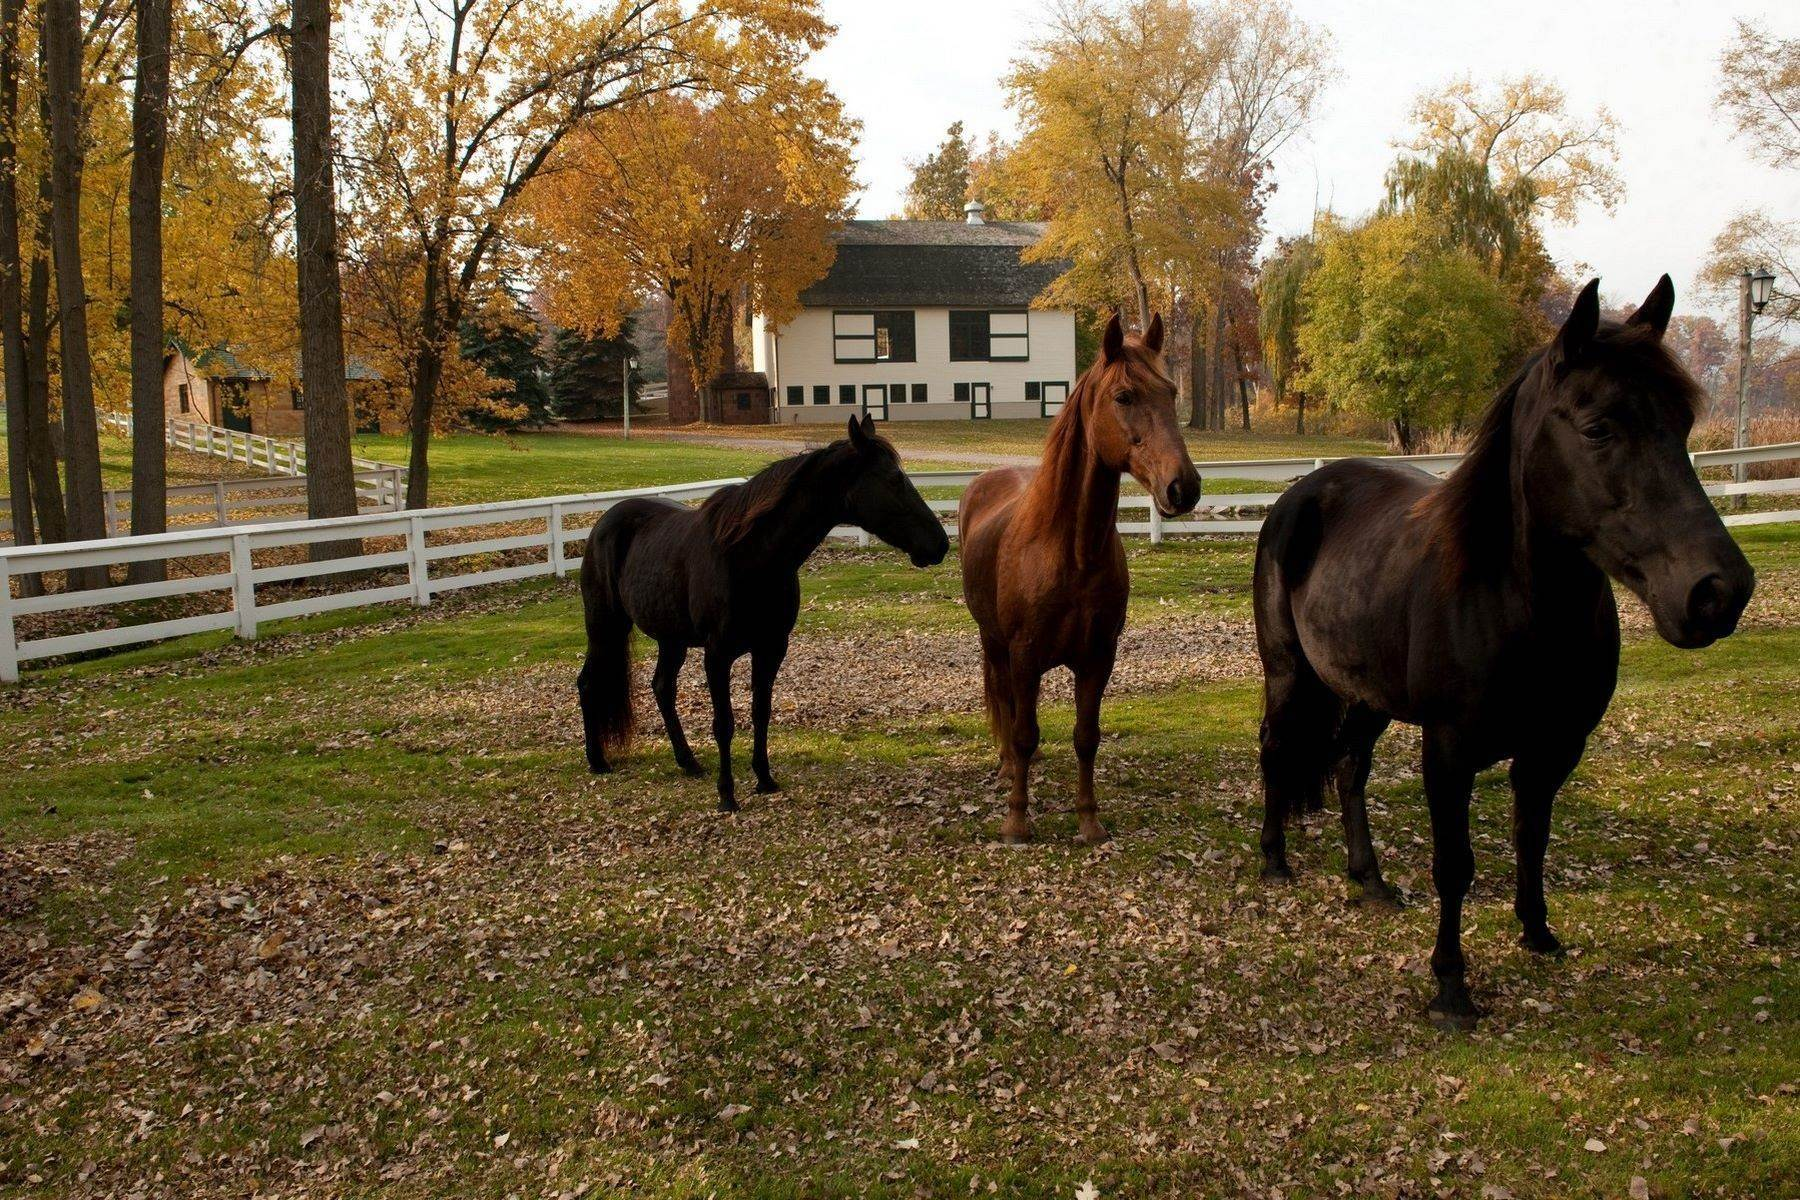 34. Property for Sale at The Stables 2670 Turtle Lake Drive, #44 and #45 Bloomfield Hills, Michigan 48302 United States